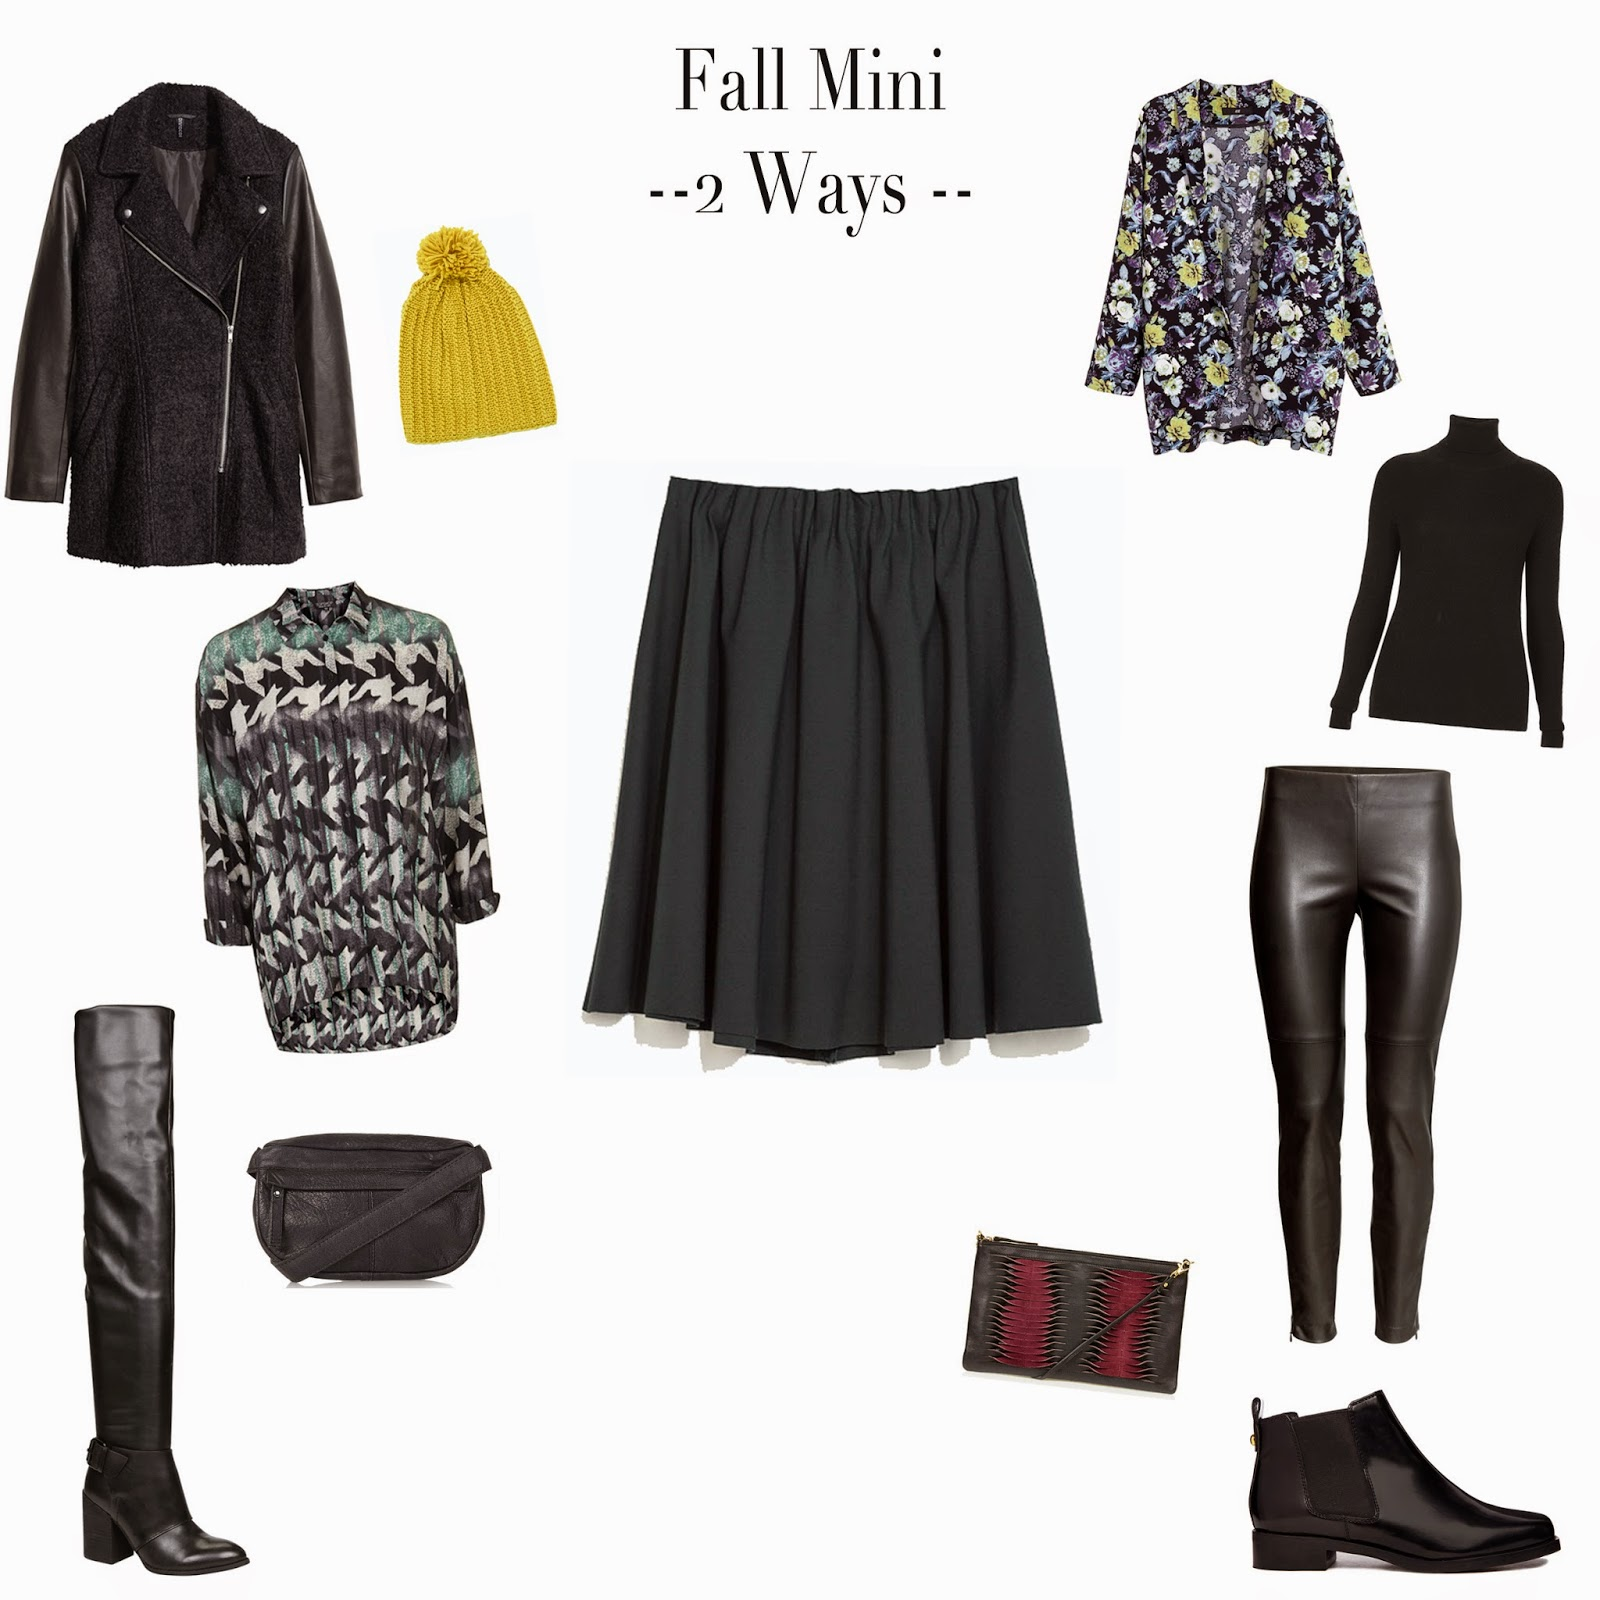 Edie's Closet; Fall Mini, 1 skirt 2 ways